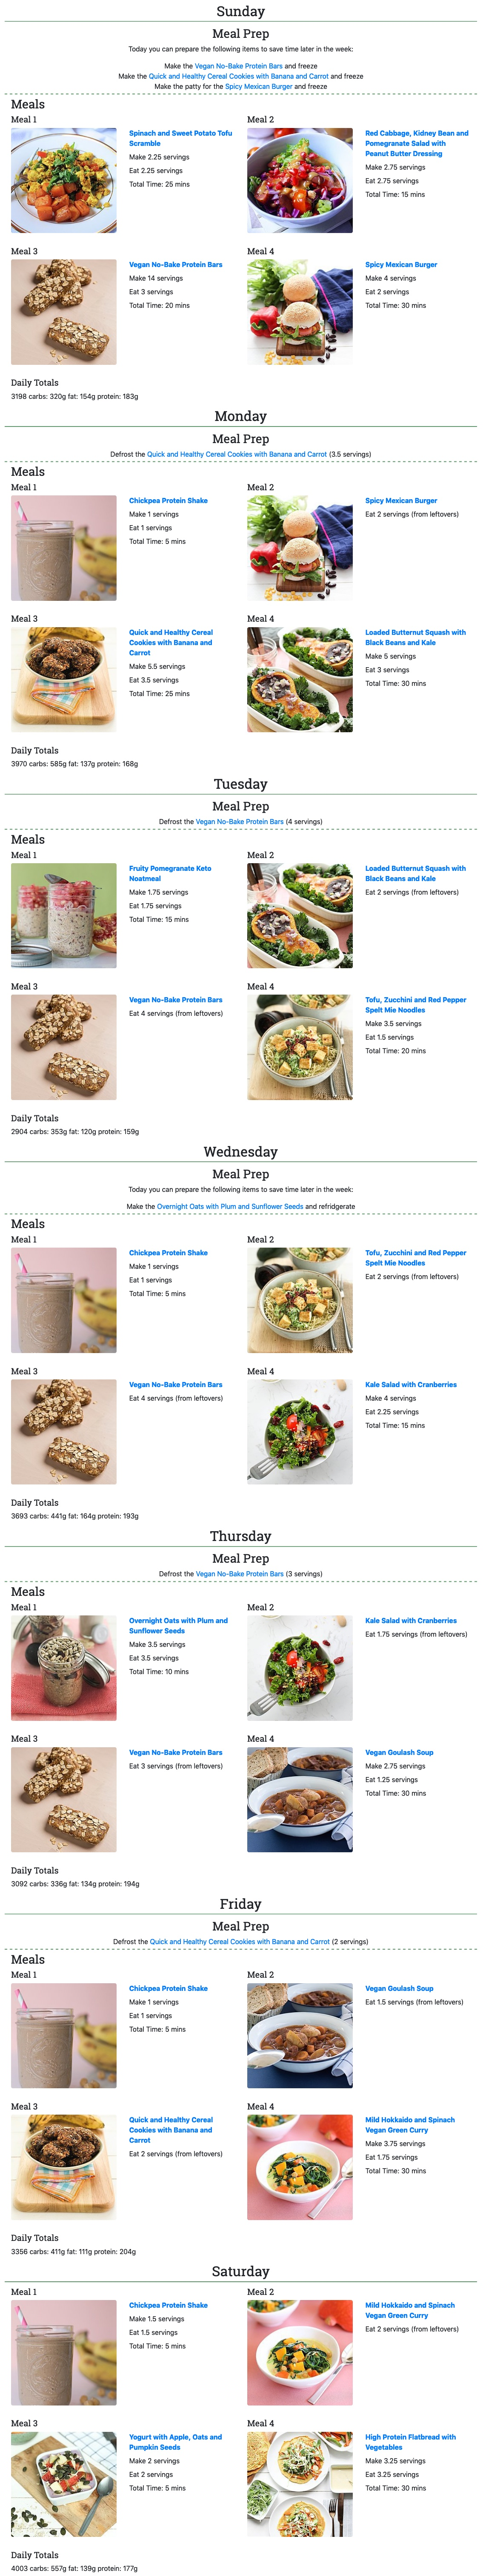 Vegan Bodybuilding Meal Plan for Bulking